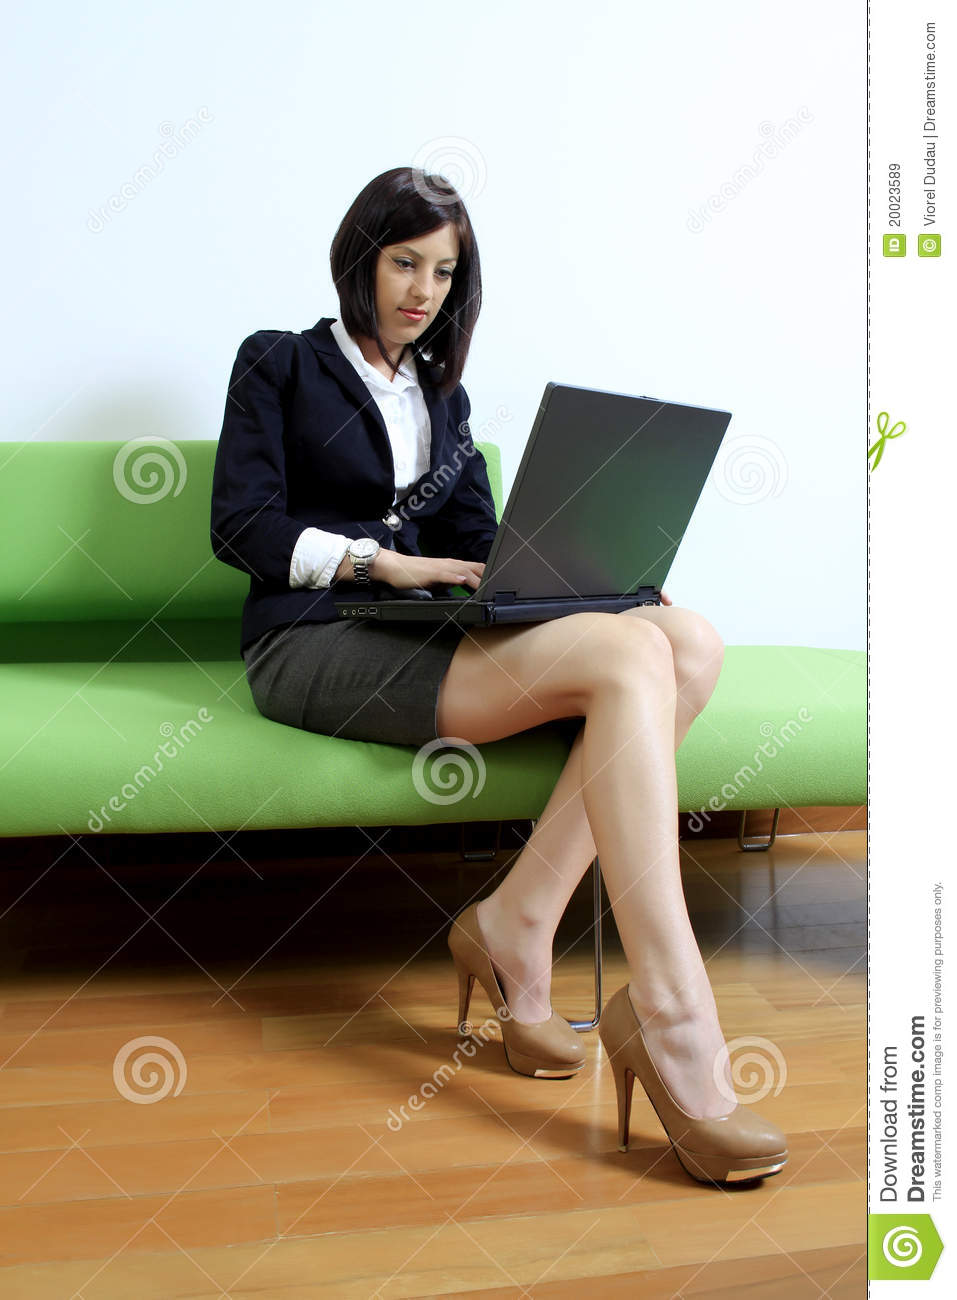 in suit with short skirt sitting on a couch using a laptop computer